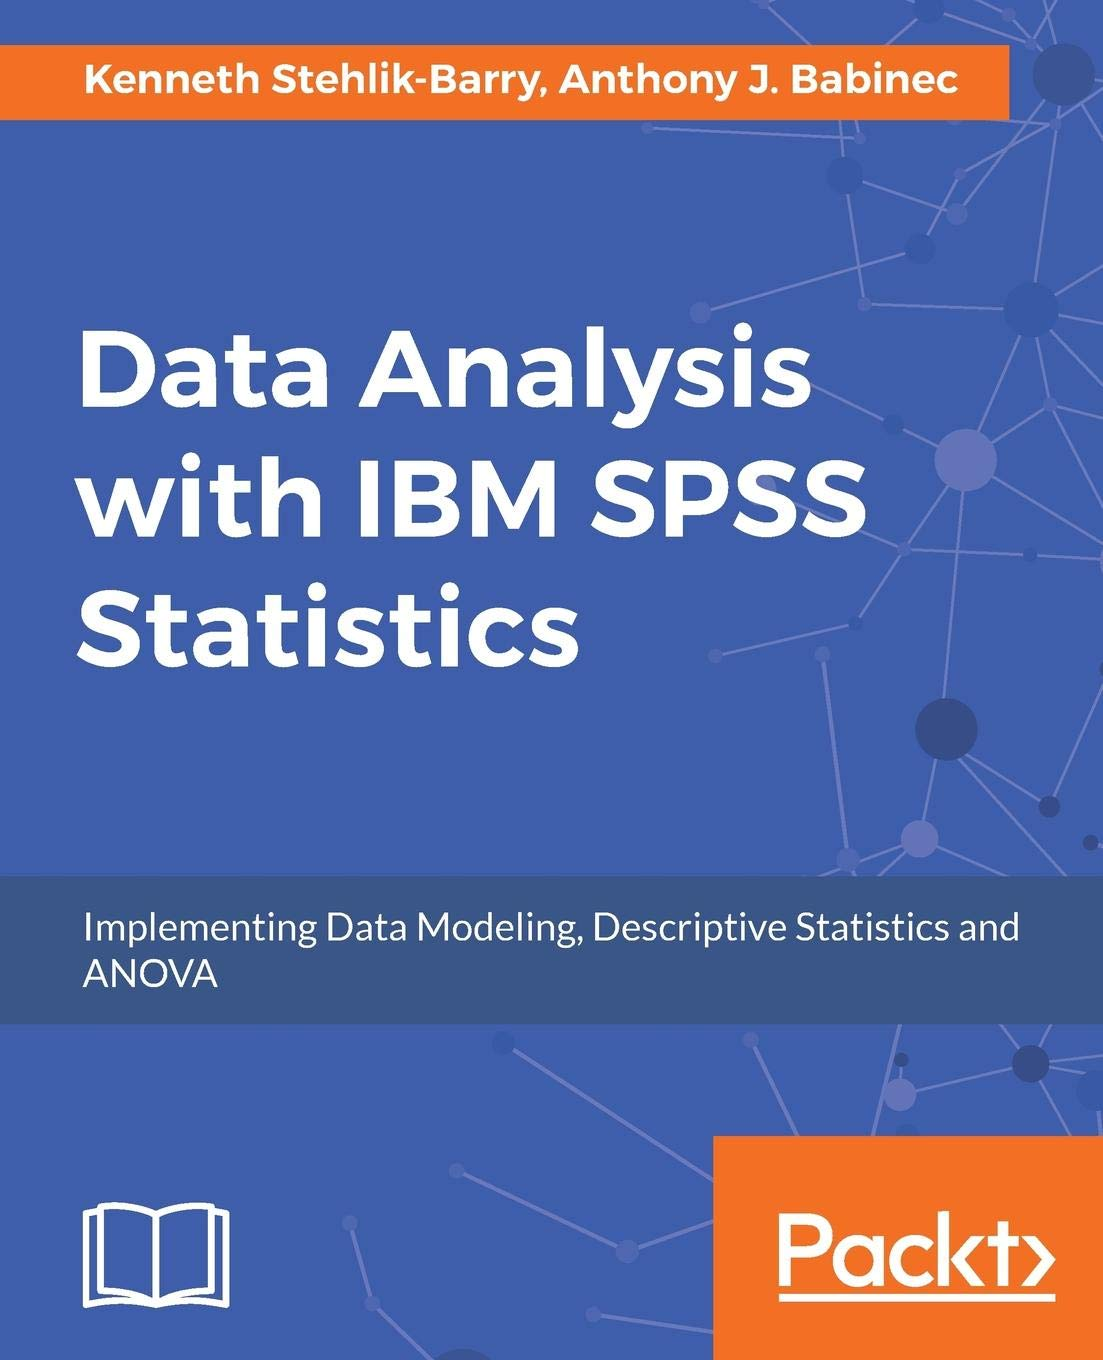 Amazon.com: Data Analysis with IBM SPSS Statistics: Implementing data  modeling, descriptive statistics and ANOVA (9781787283817): Kenneth  Stehlik-Barry, ...